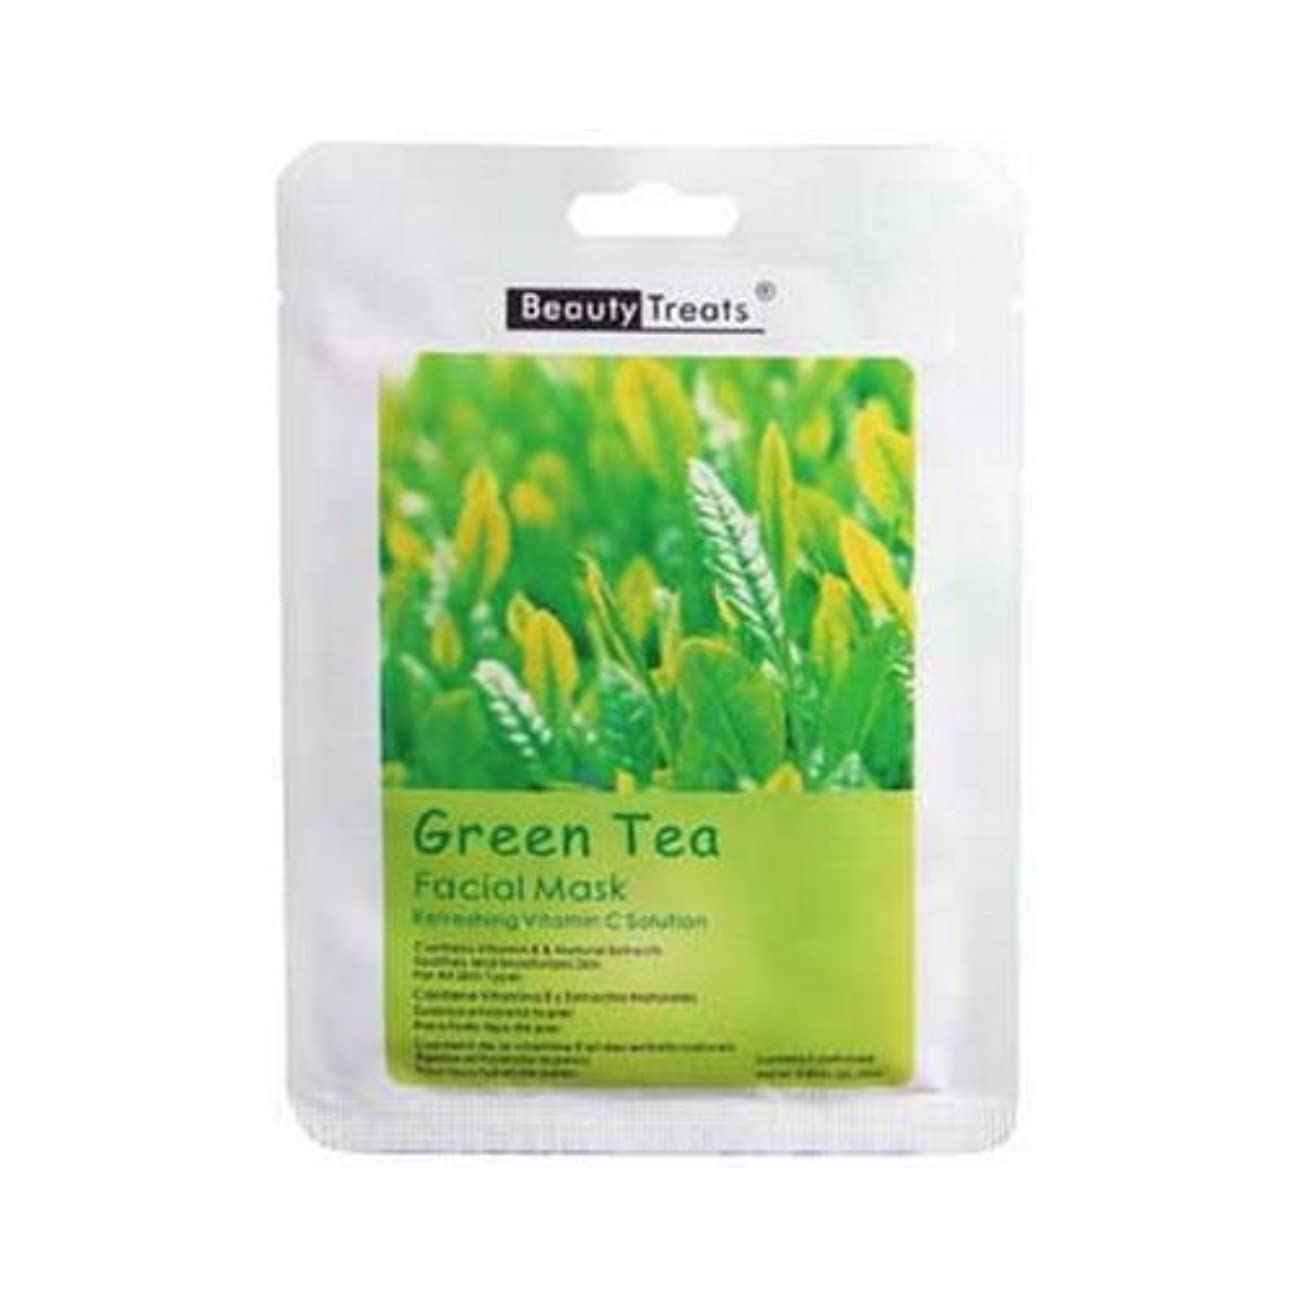 苦悩ルート狭い(6 Pack) BEAUTY TREATS Facial Mask Refreshing Vitamin C Solution - Green Tea (並行輸入品)